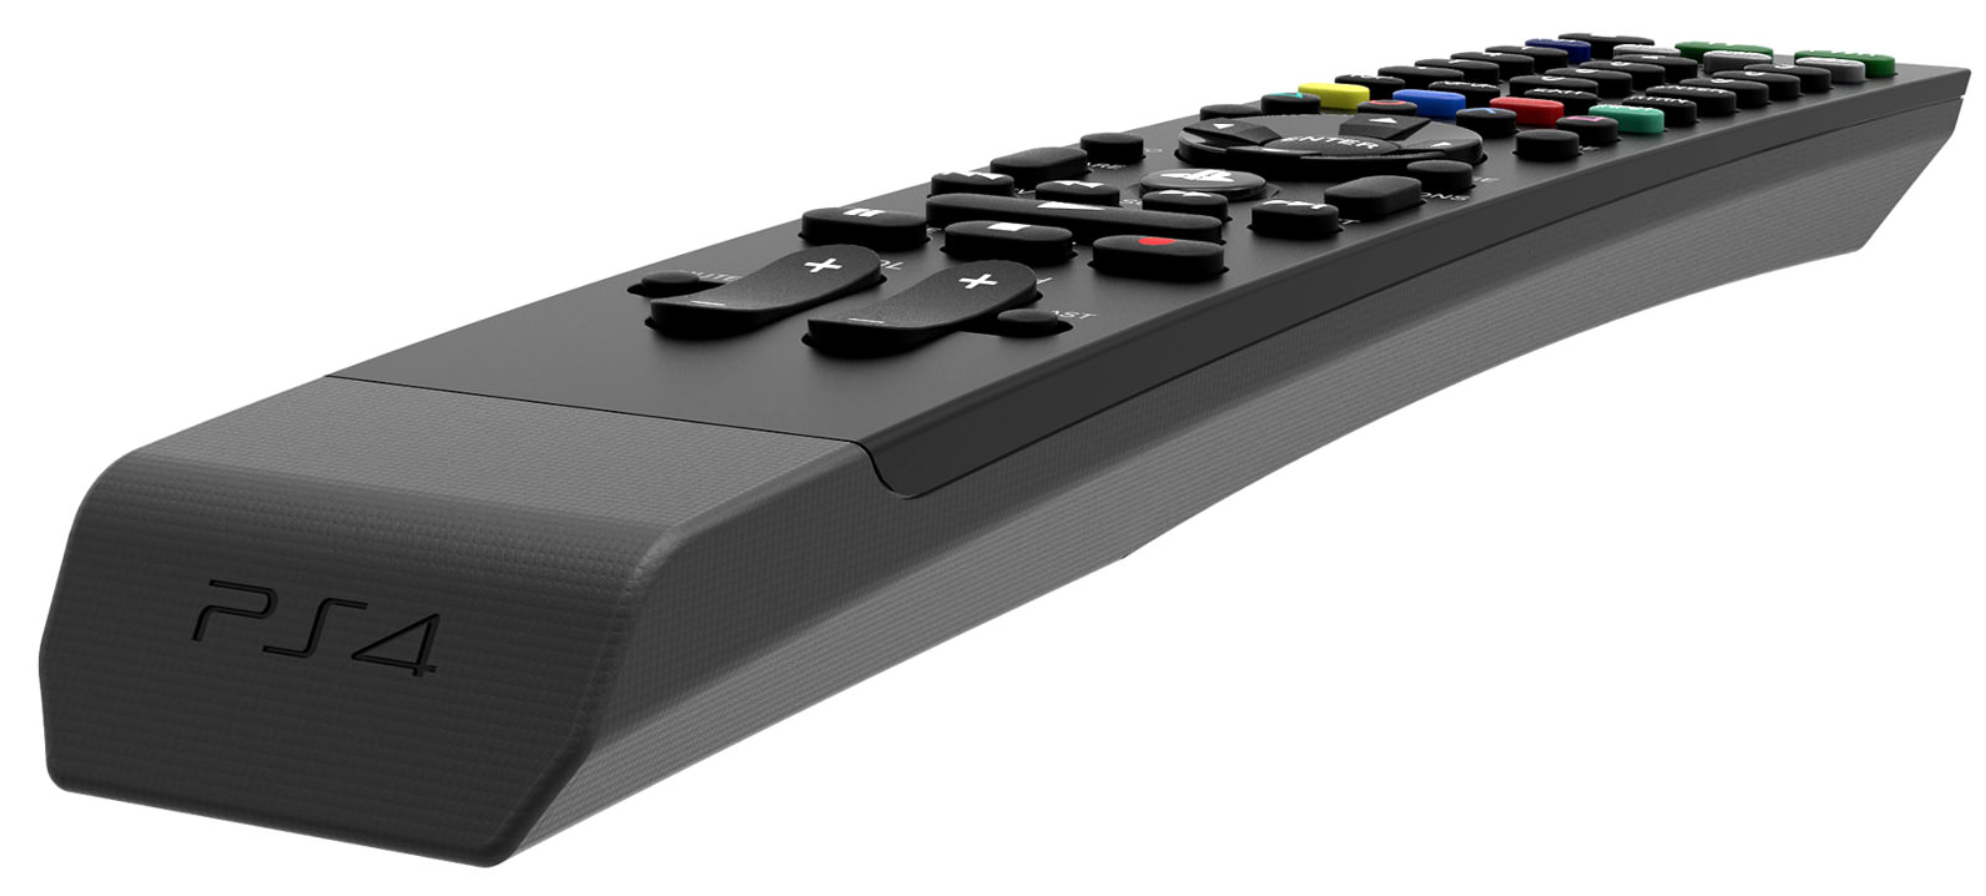 A New PS4 Remote Makes the Playstation a Halfway Decent Set-Top Box